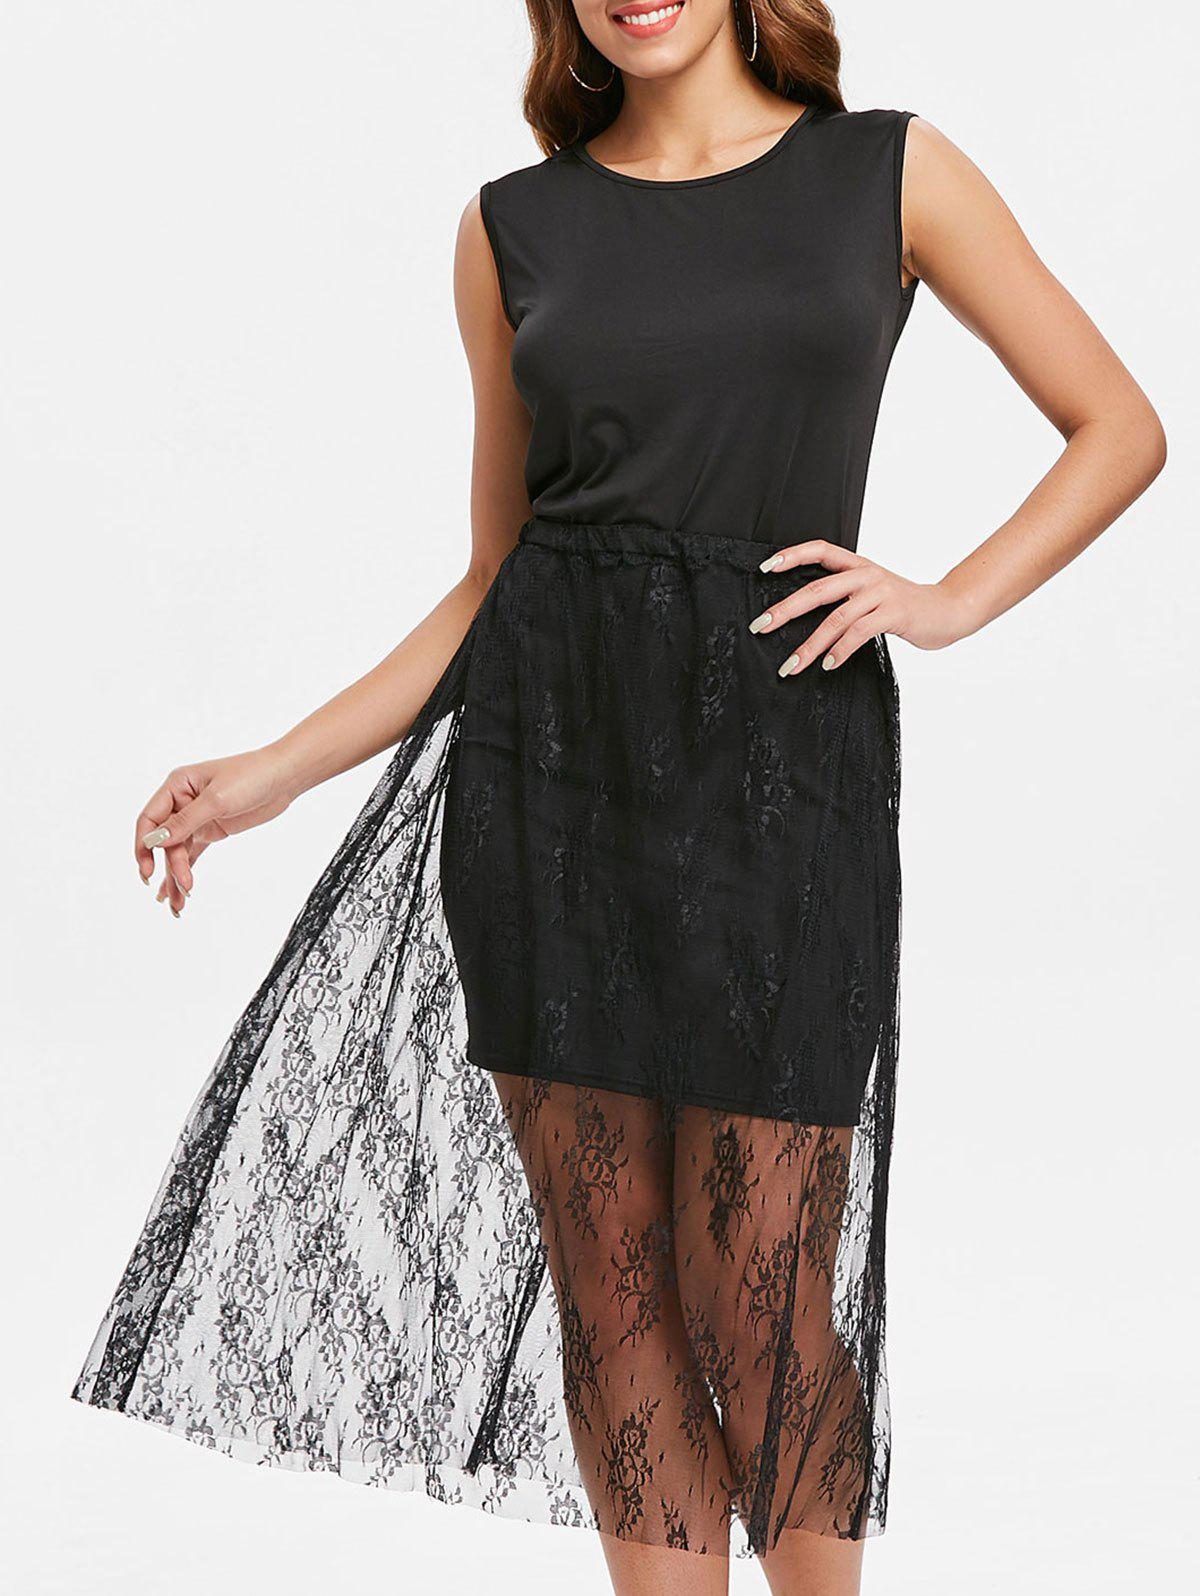 Shop Tank Dress and Lace Skirt